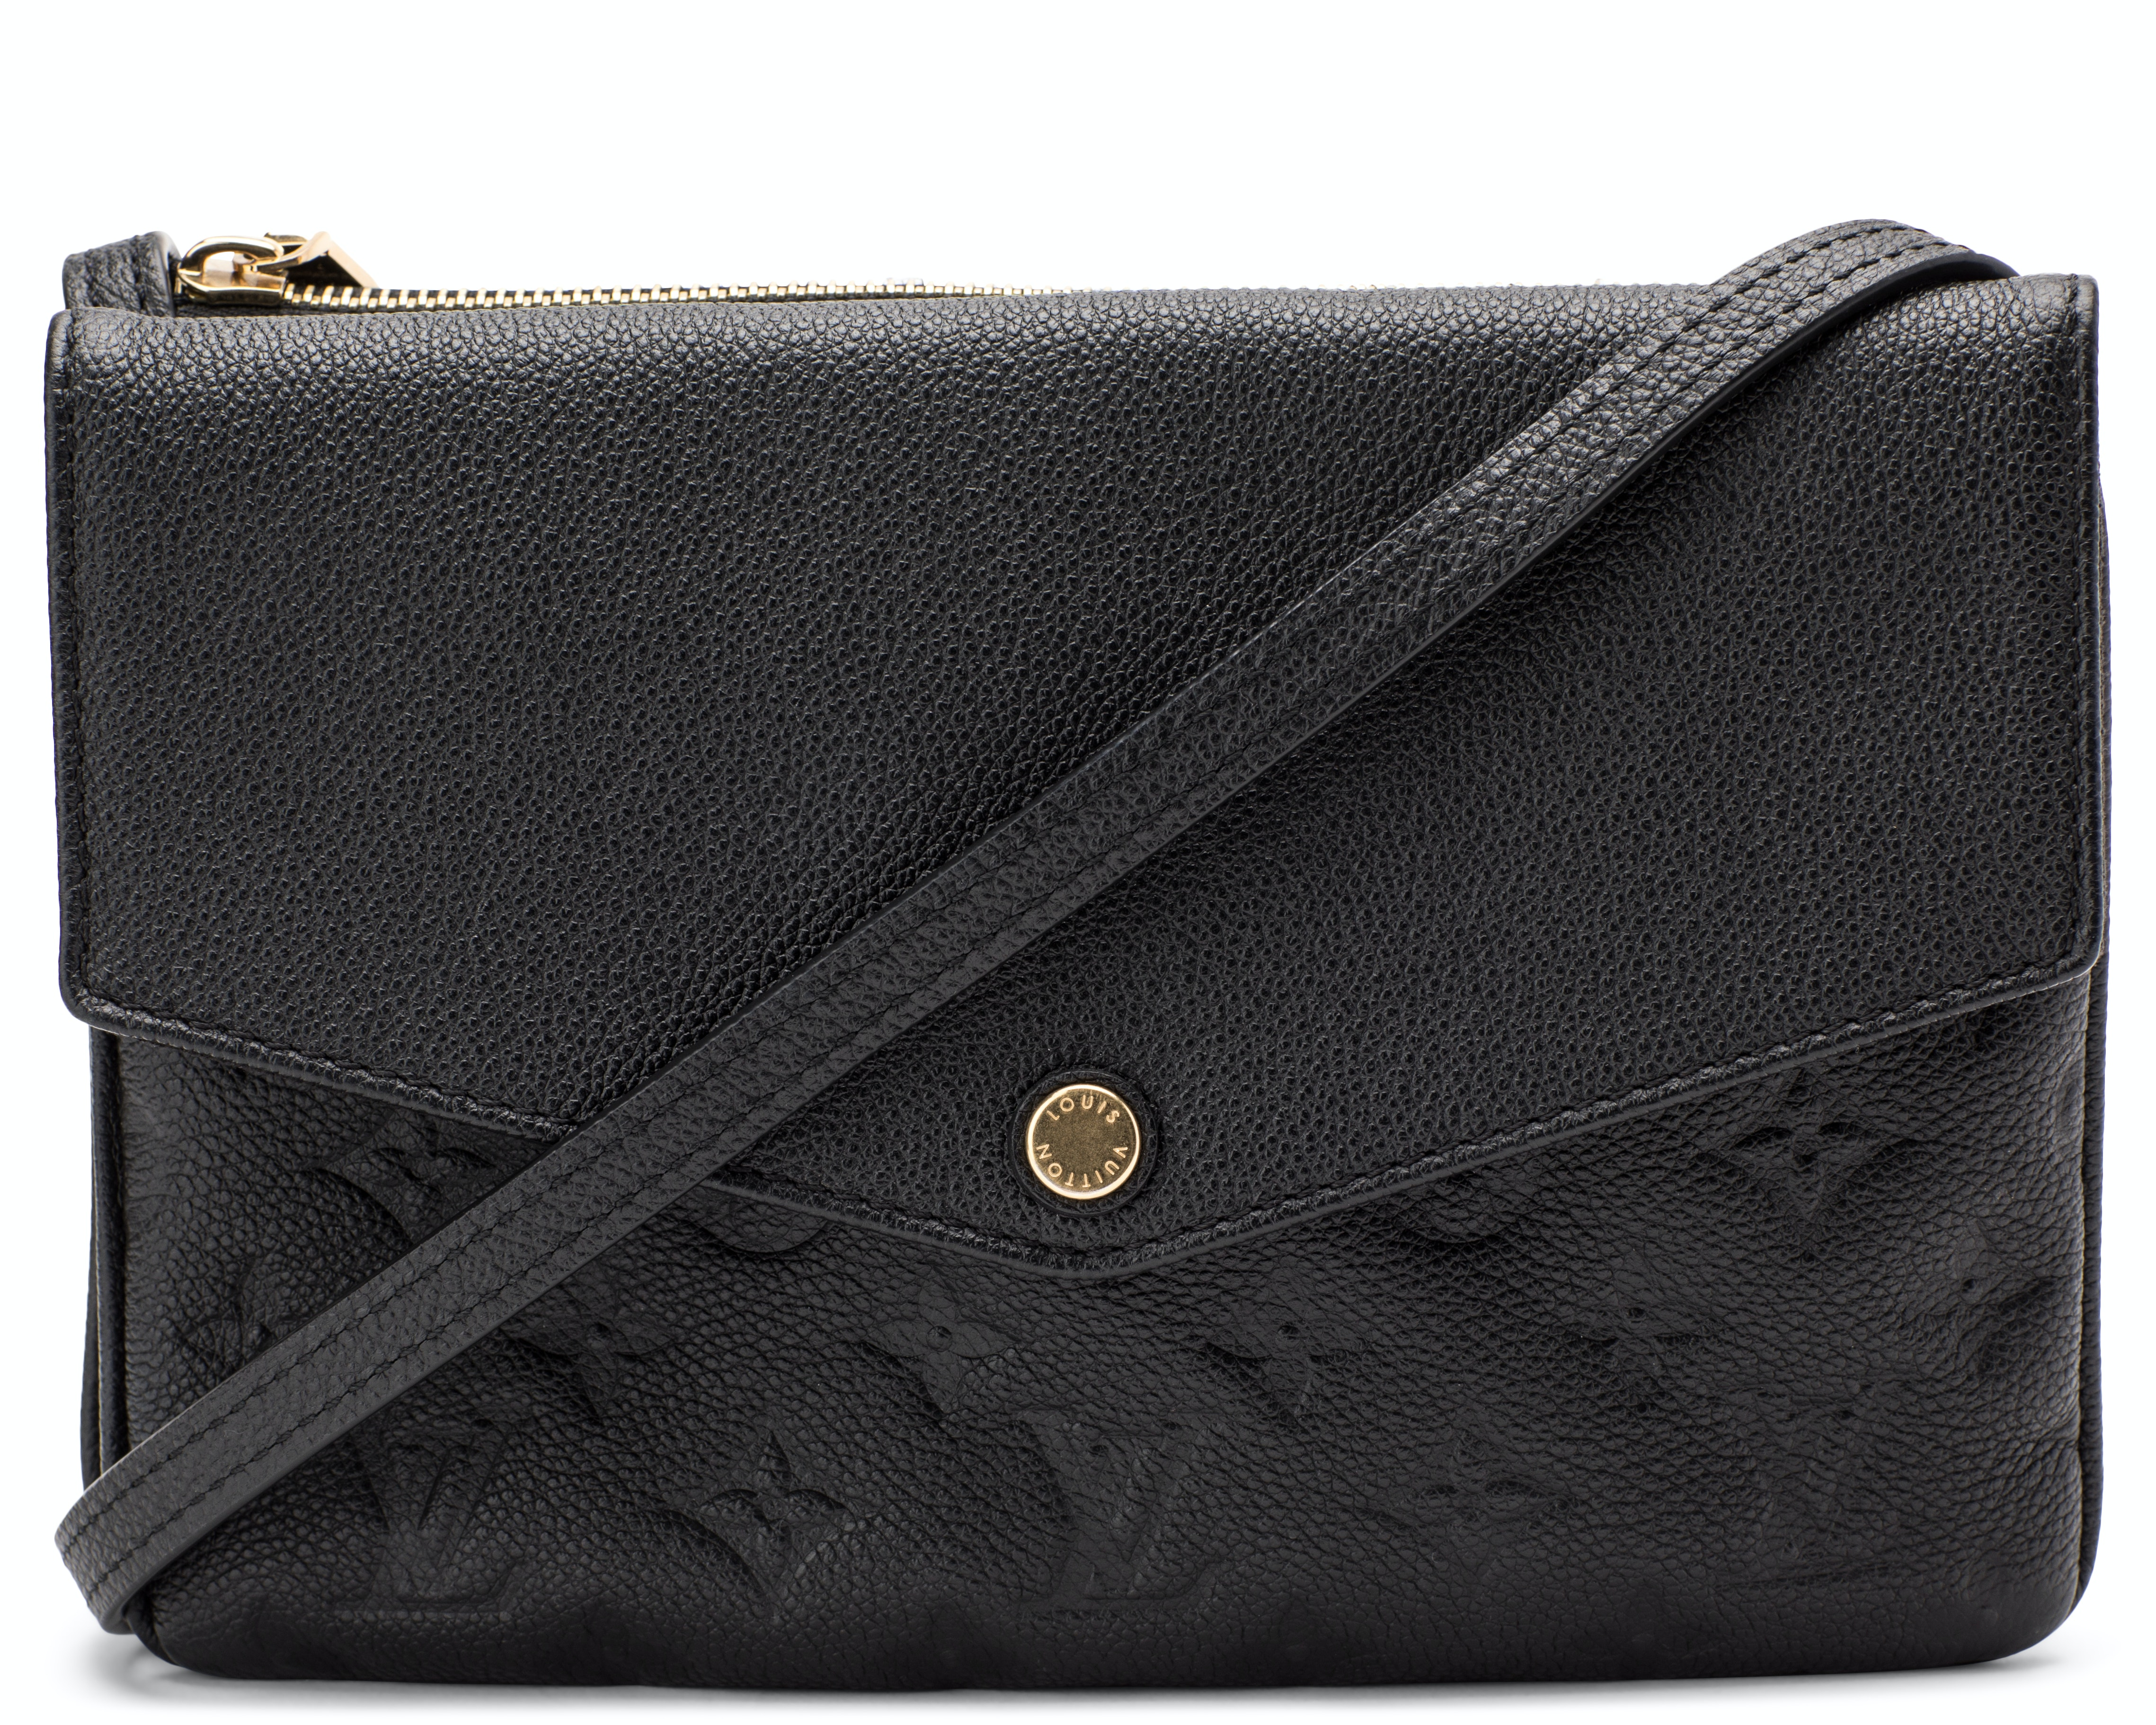 Monogram Empreinte Black